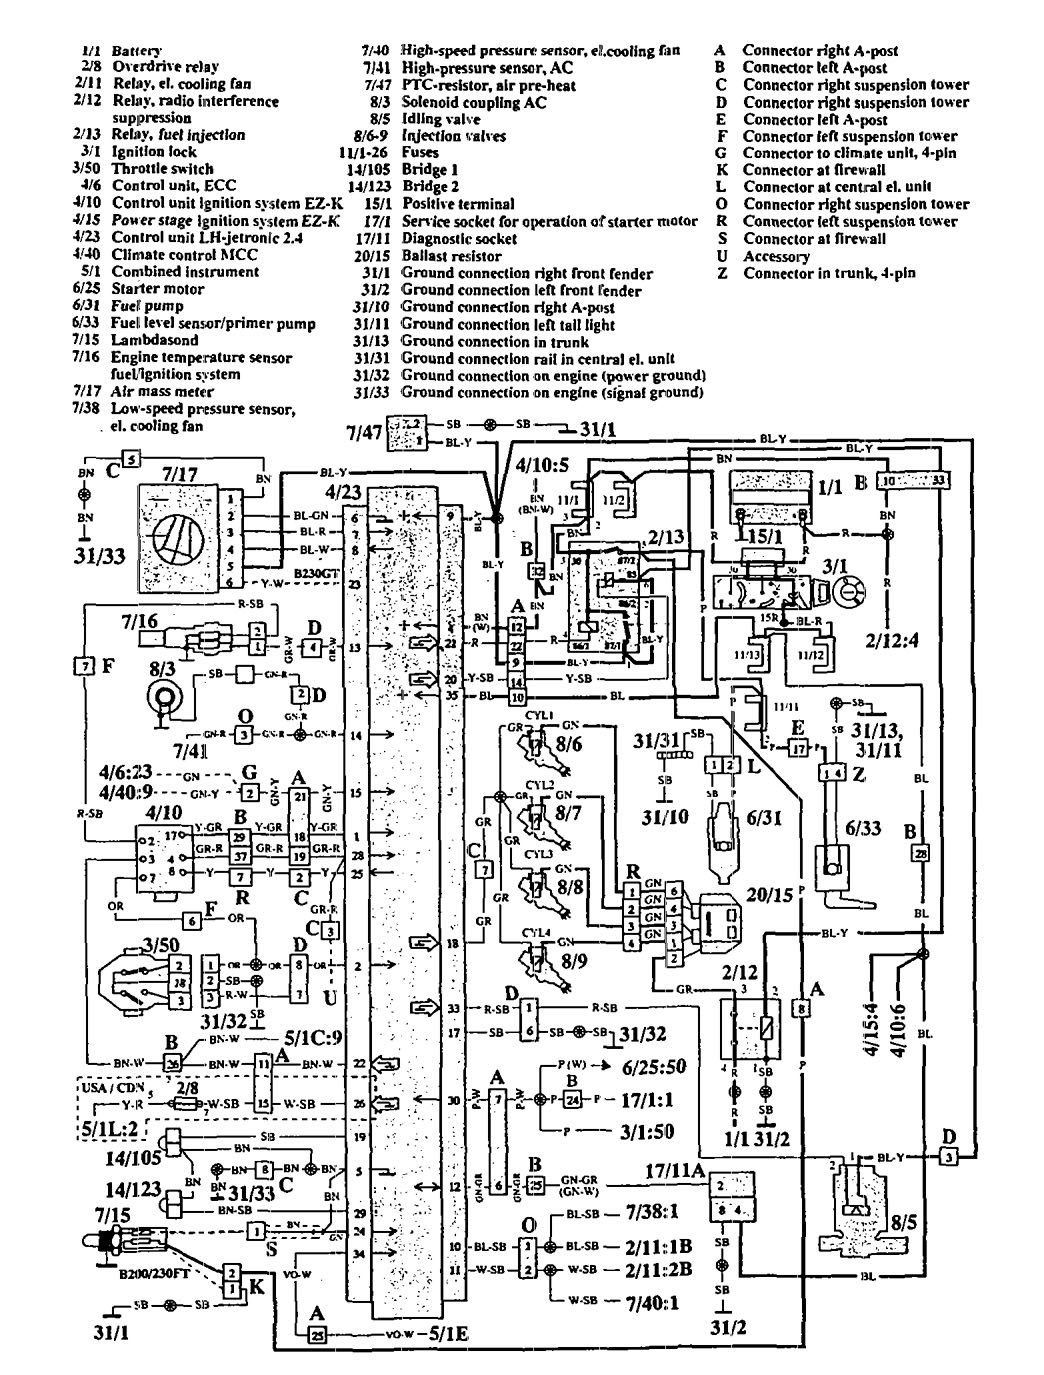 volvo 940 wiring diagram fuel controls v2 2 1992 hu 613 wiring diagram boat wiring diagram \u2022 wiring diagrams j  at edmiracle.co